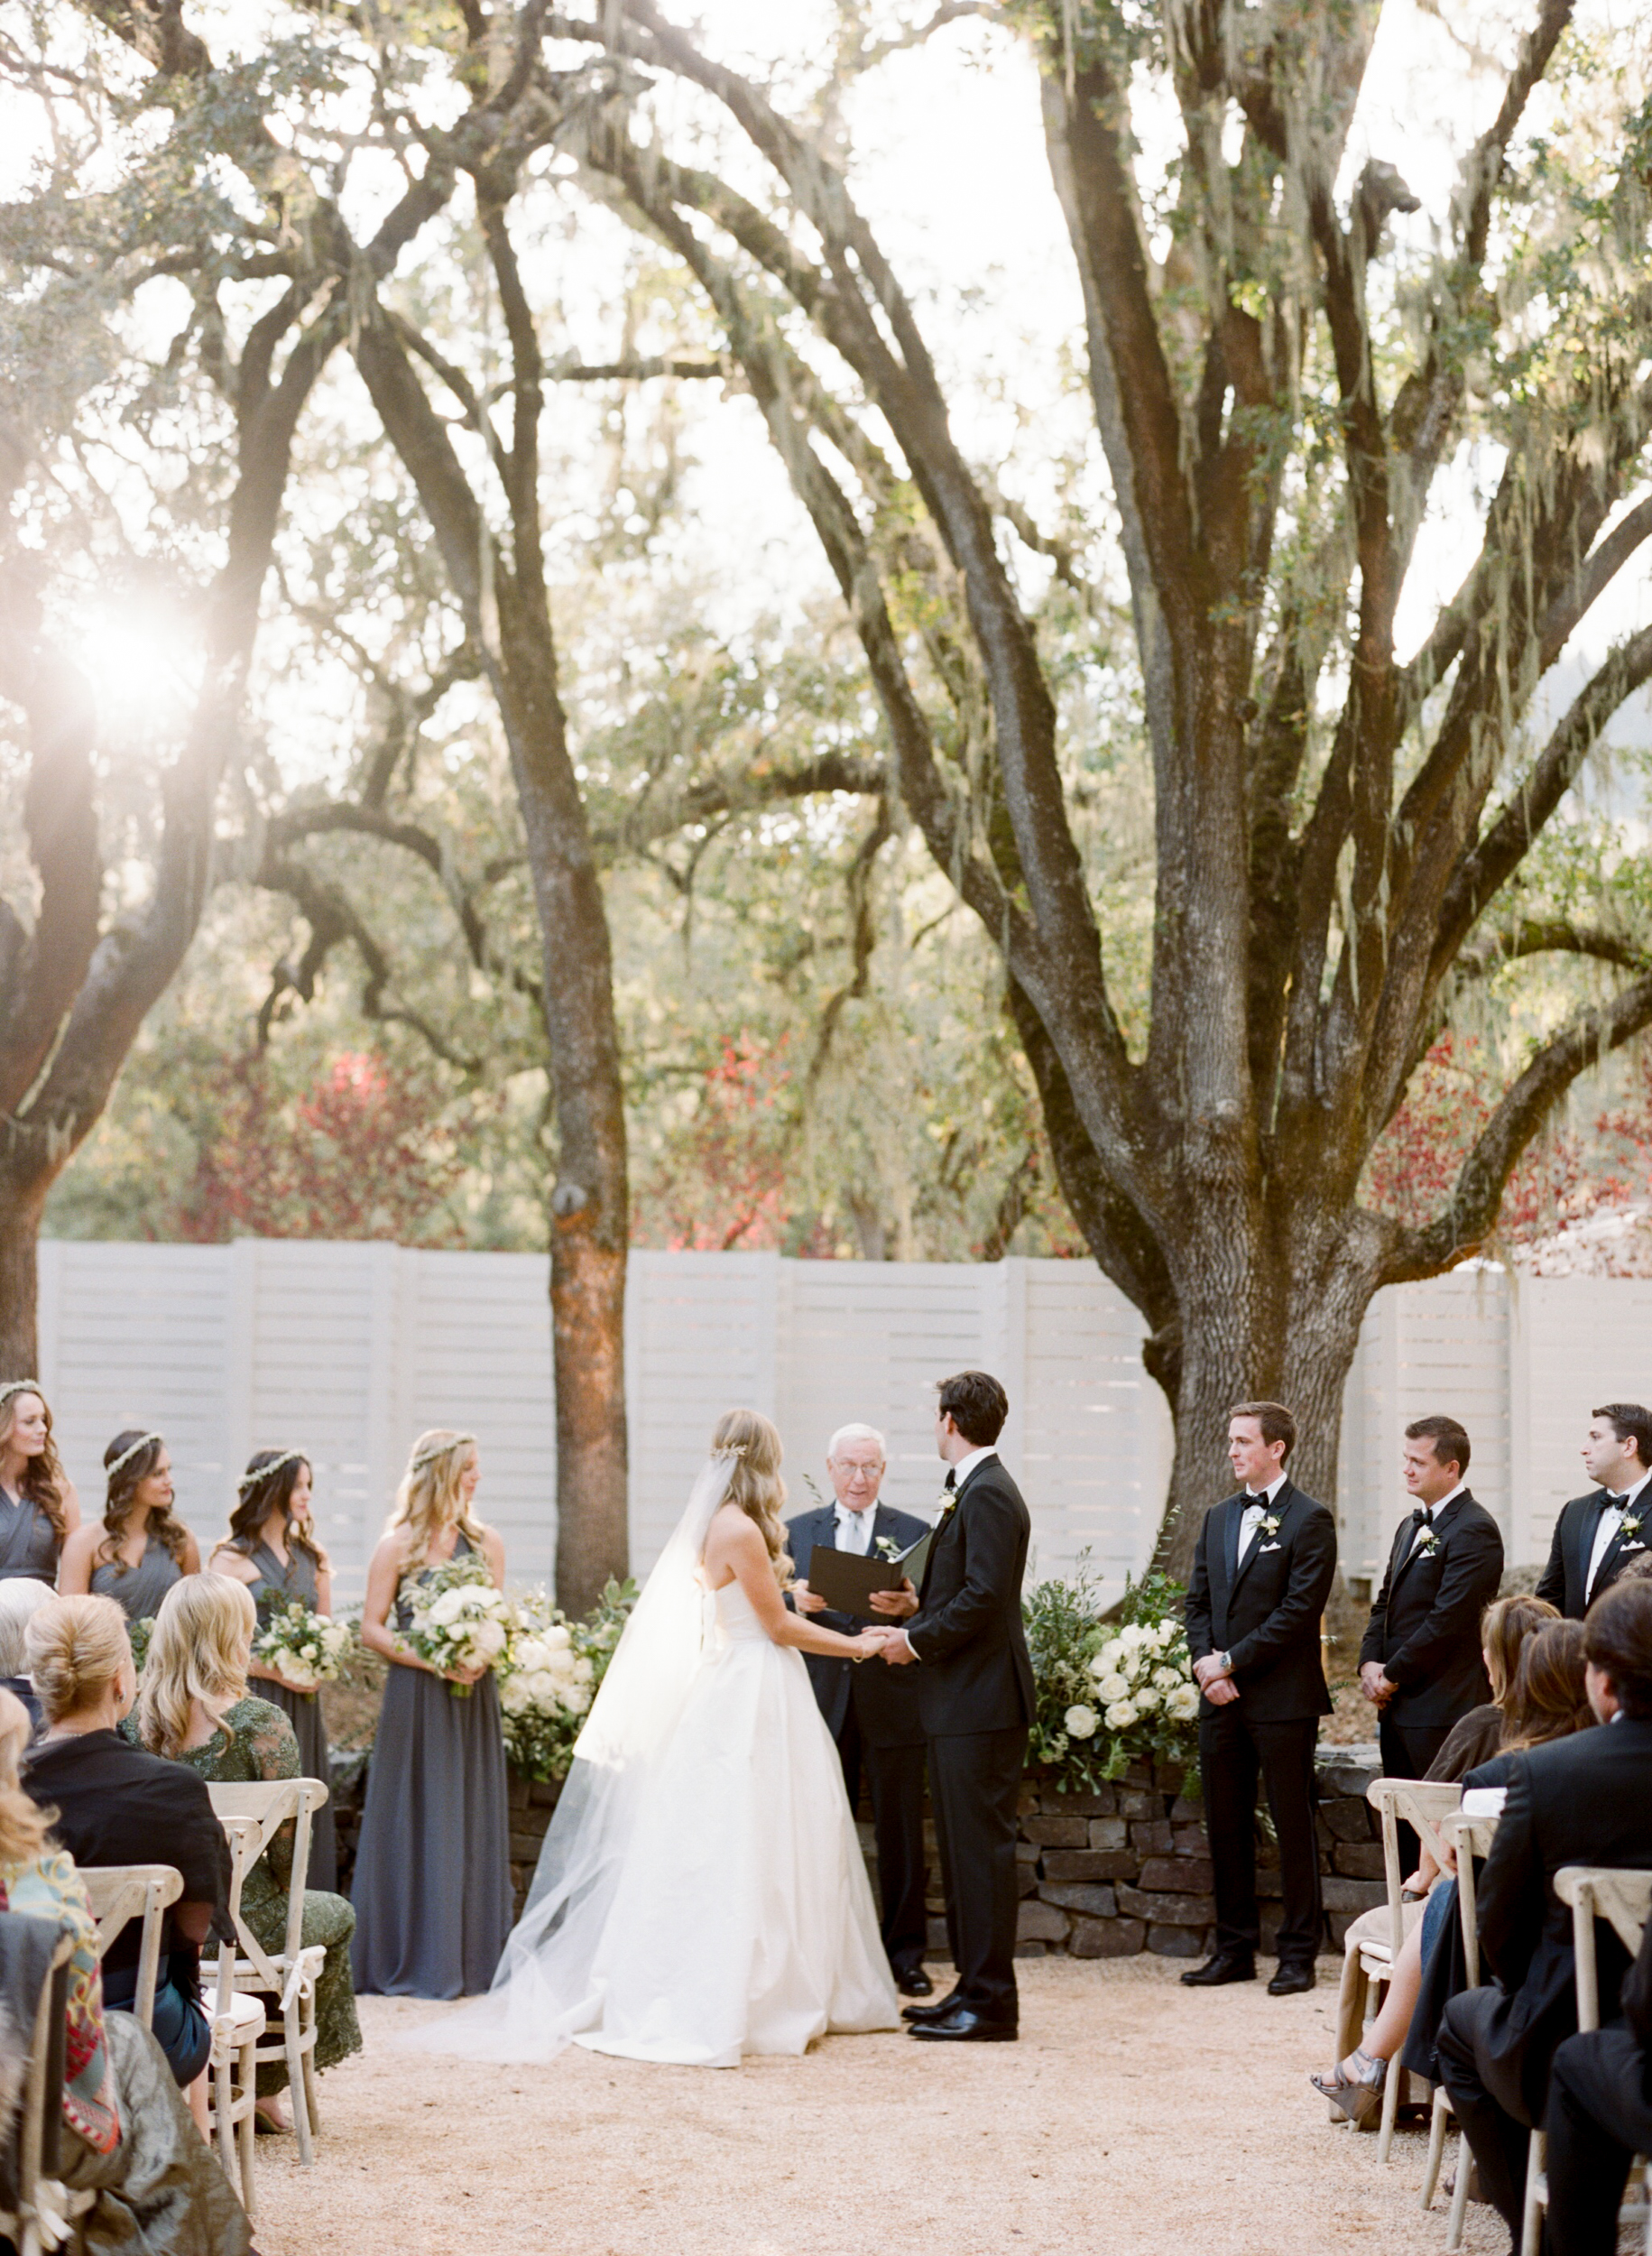 Bride and groom exchange vows at a wedding ceremony at Durham Ranch in St. Helena, California; Sylvie Gil Photography